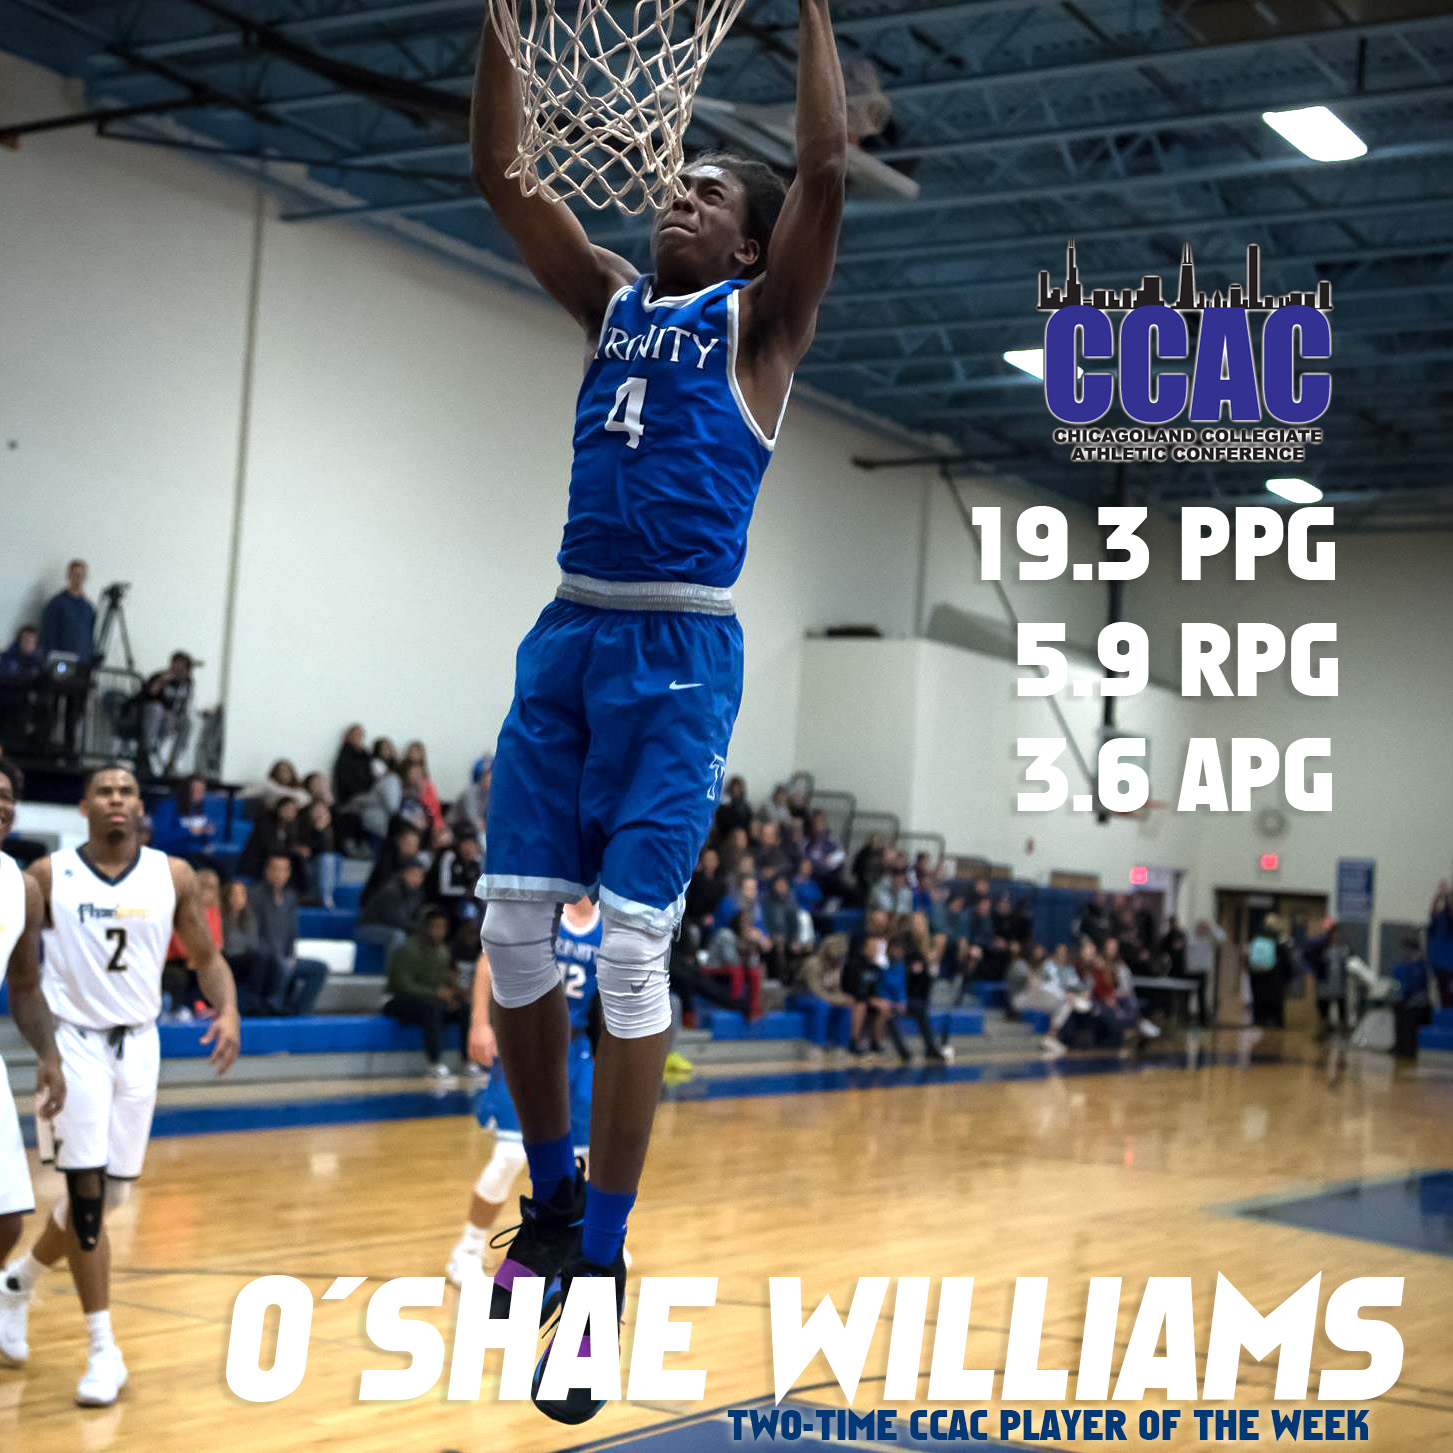 Former Charger O'Shae Williams Showcasing Talent in CCAC